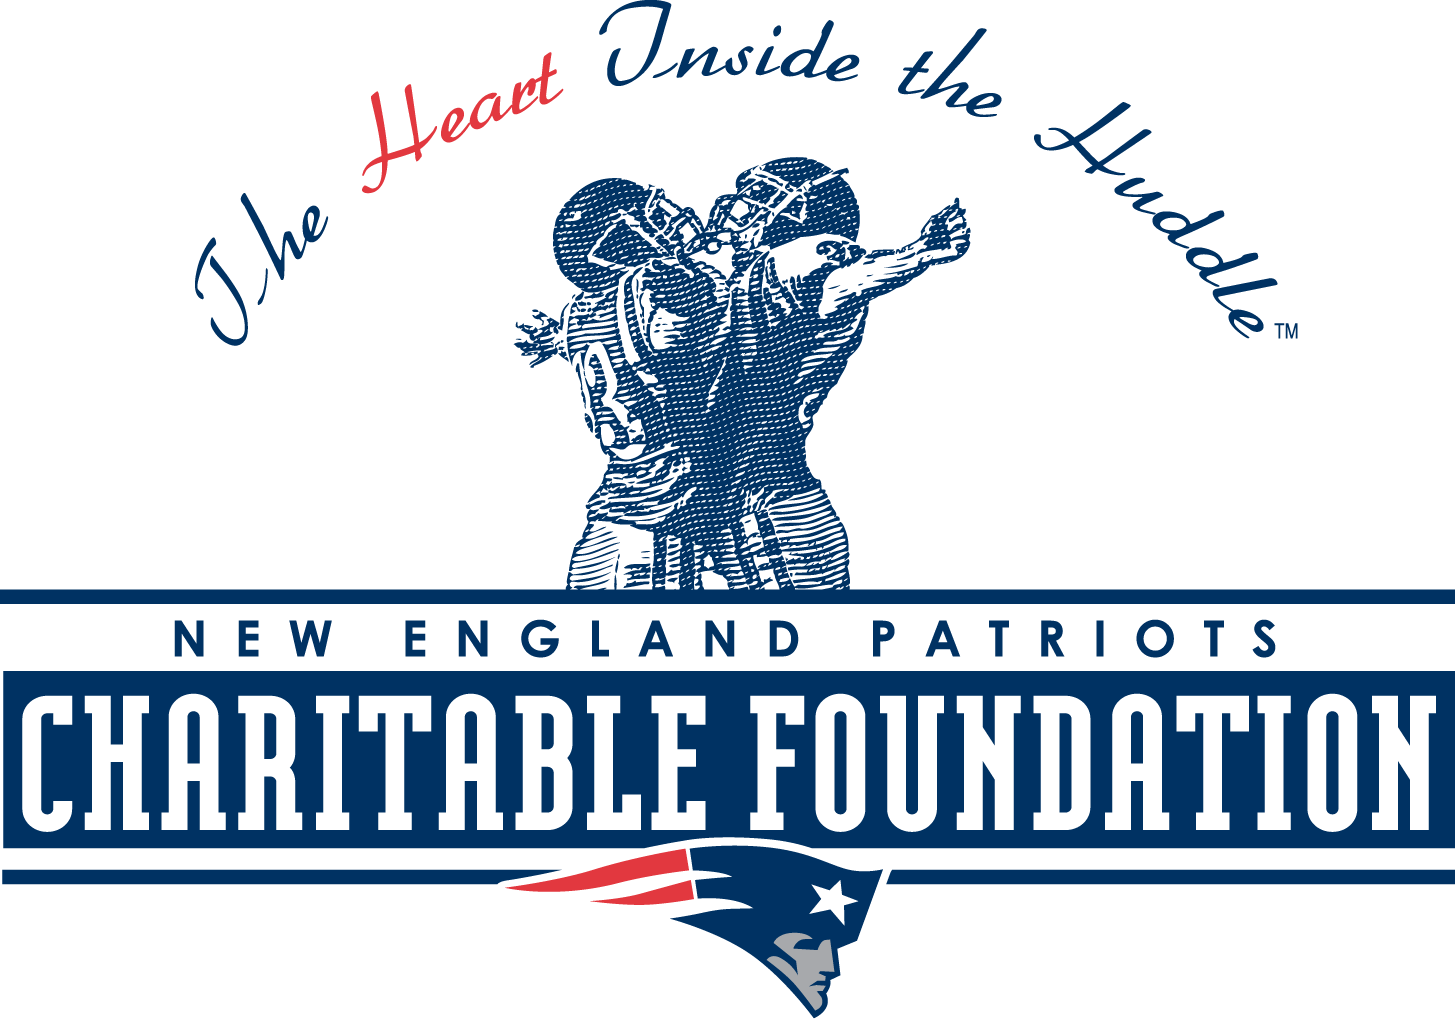 New England Patriots Charitable Foundation